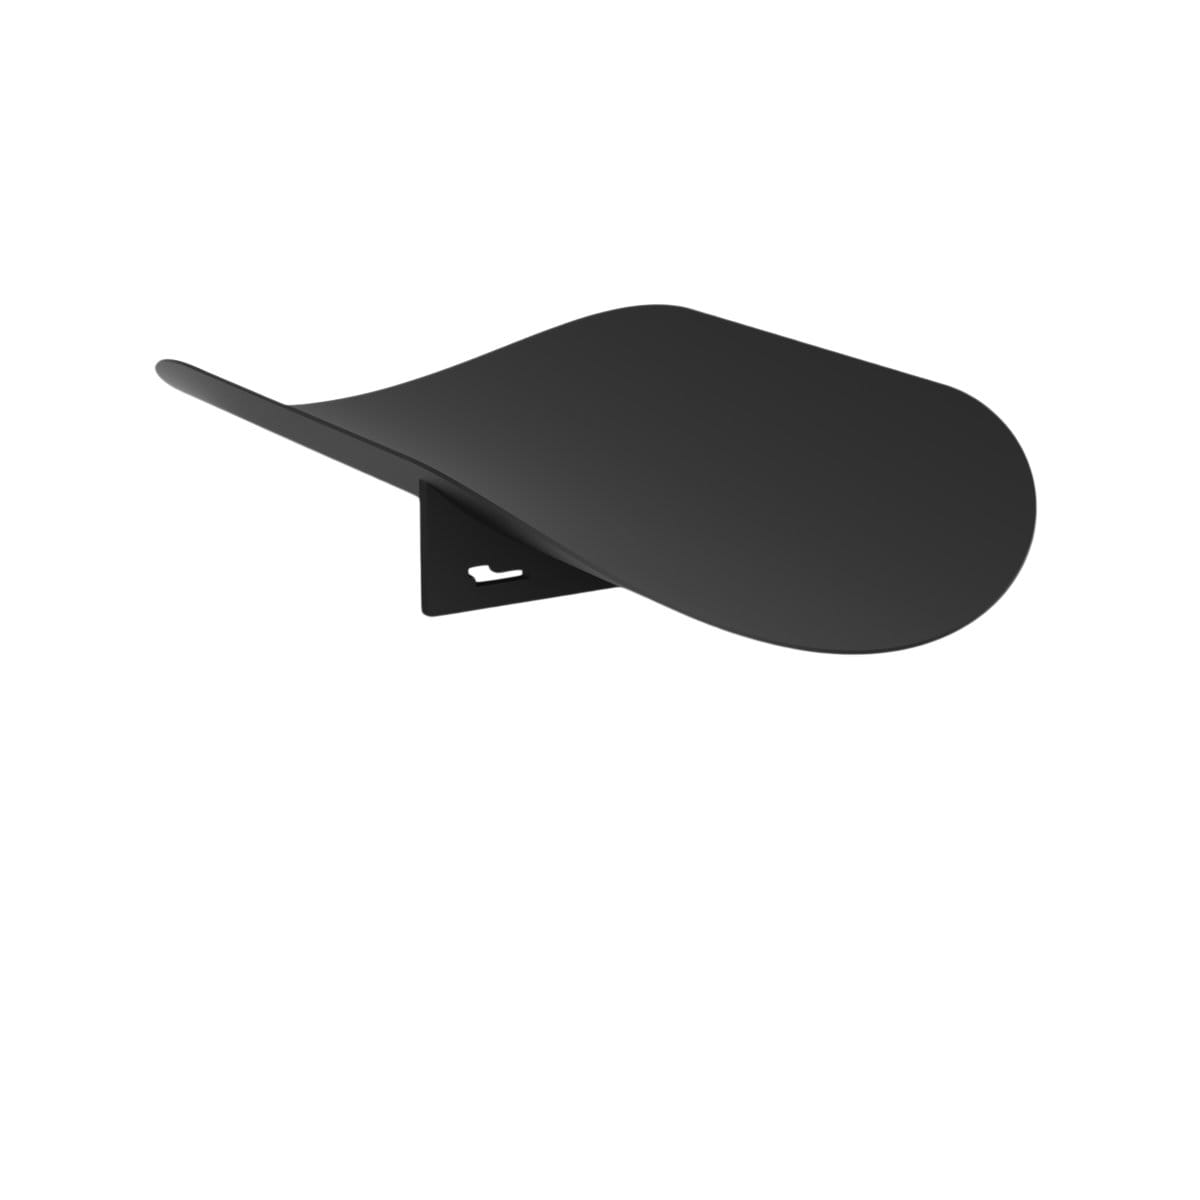 Hue Minimal Decorative Objects Leaf Black Oval Tray